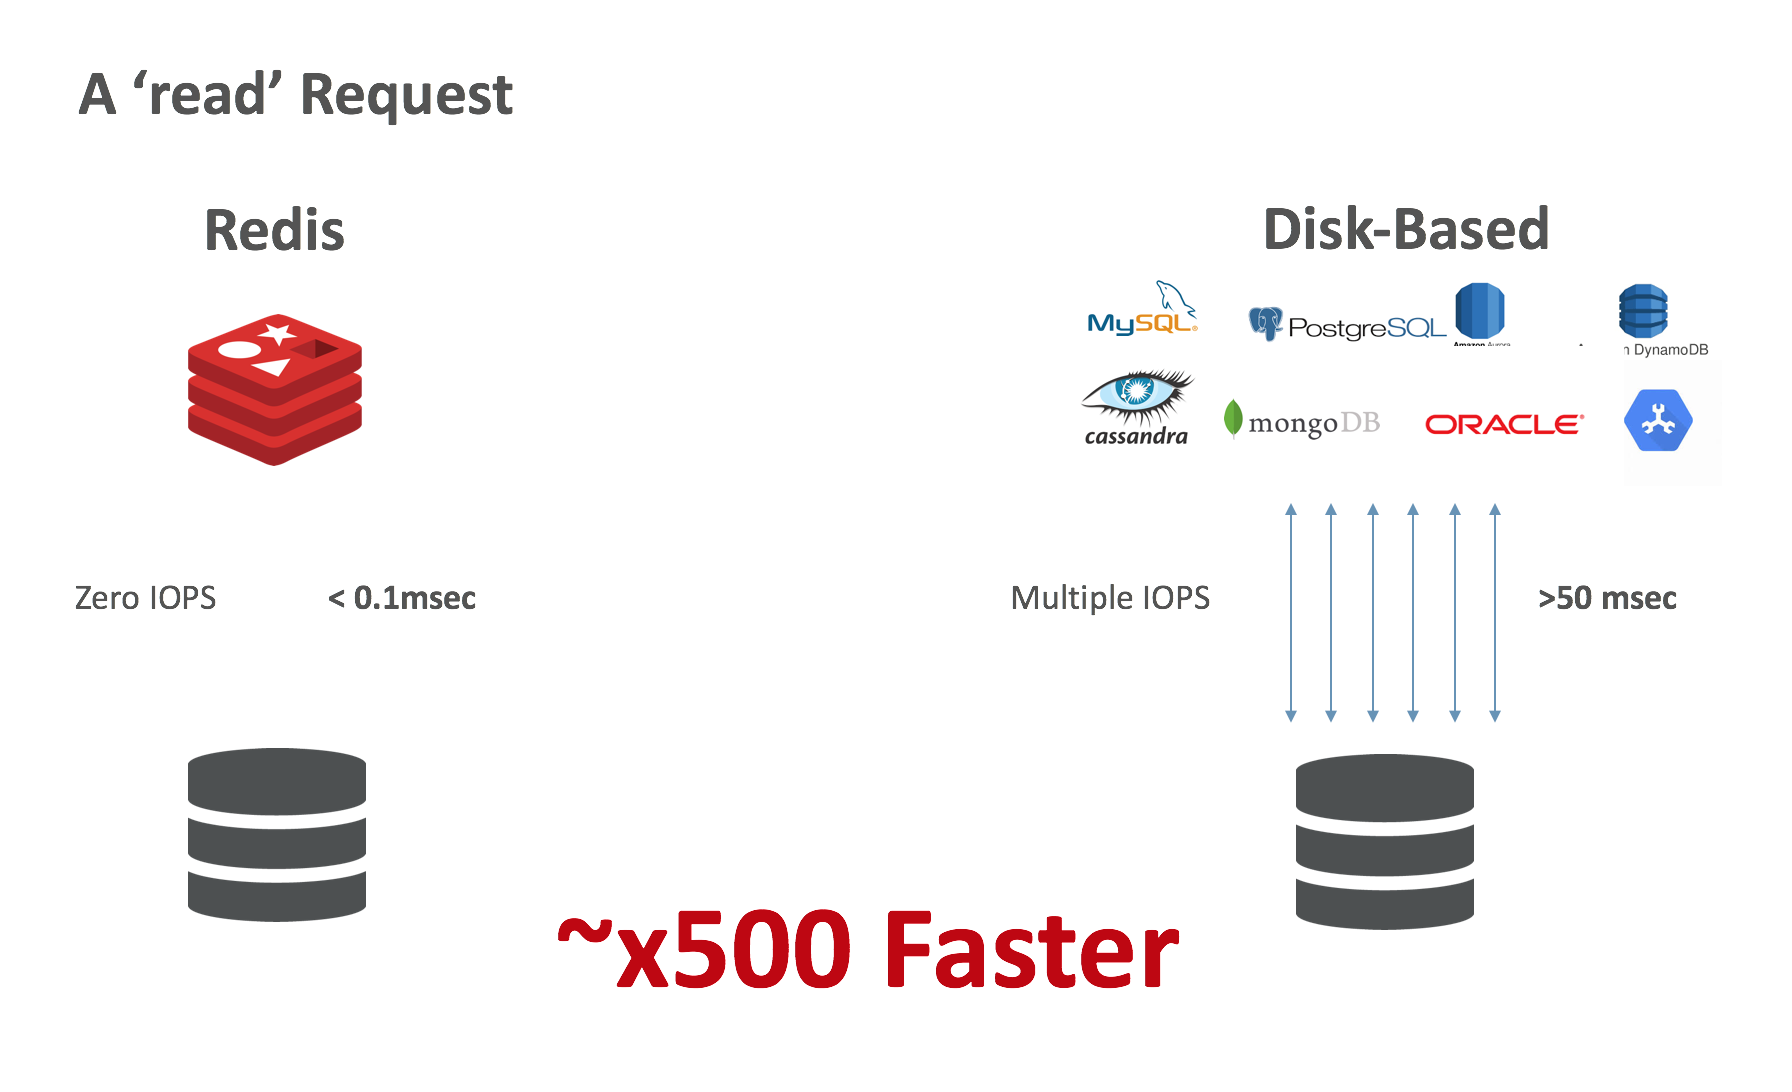 Network-attached Persistent Storage for Data Durability: Read x500 faster